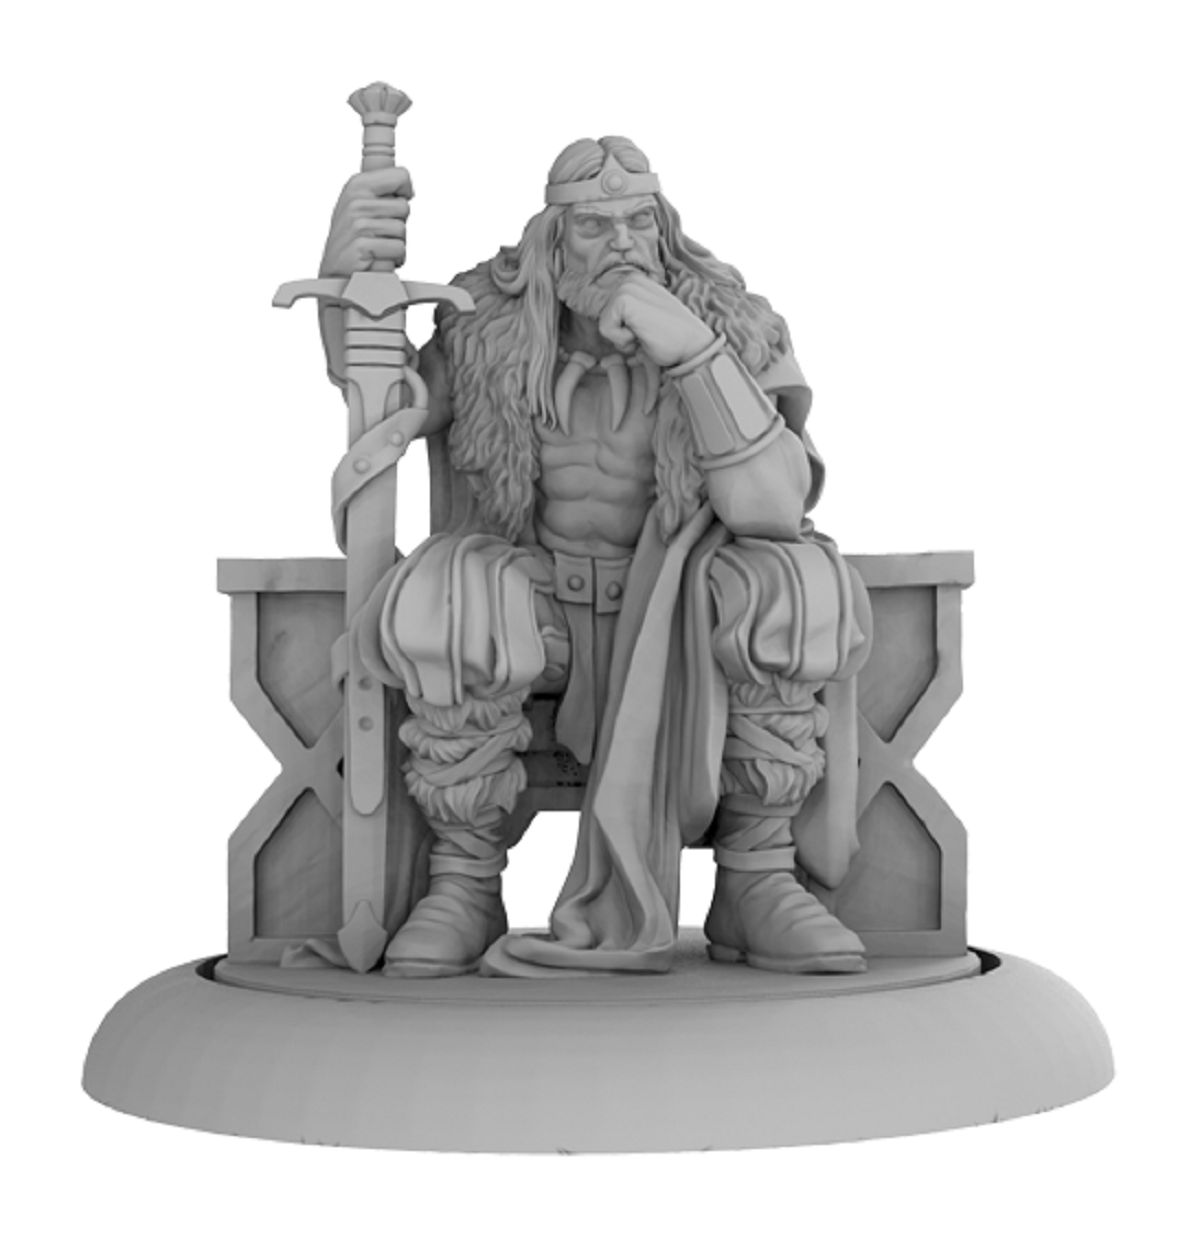 Privateer Press Announces Robert E. Howard Mini Crate Series